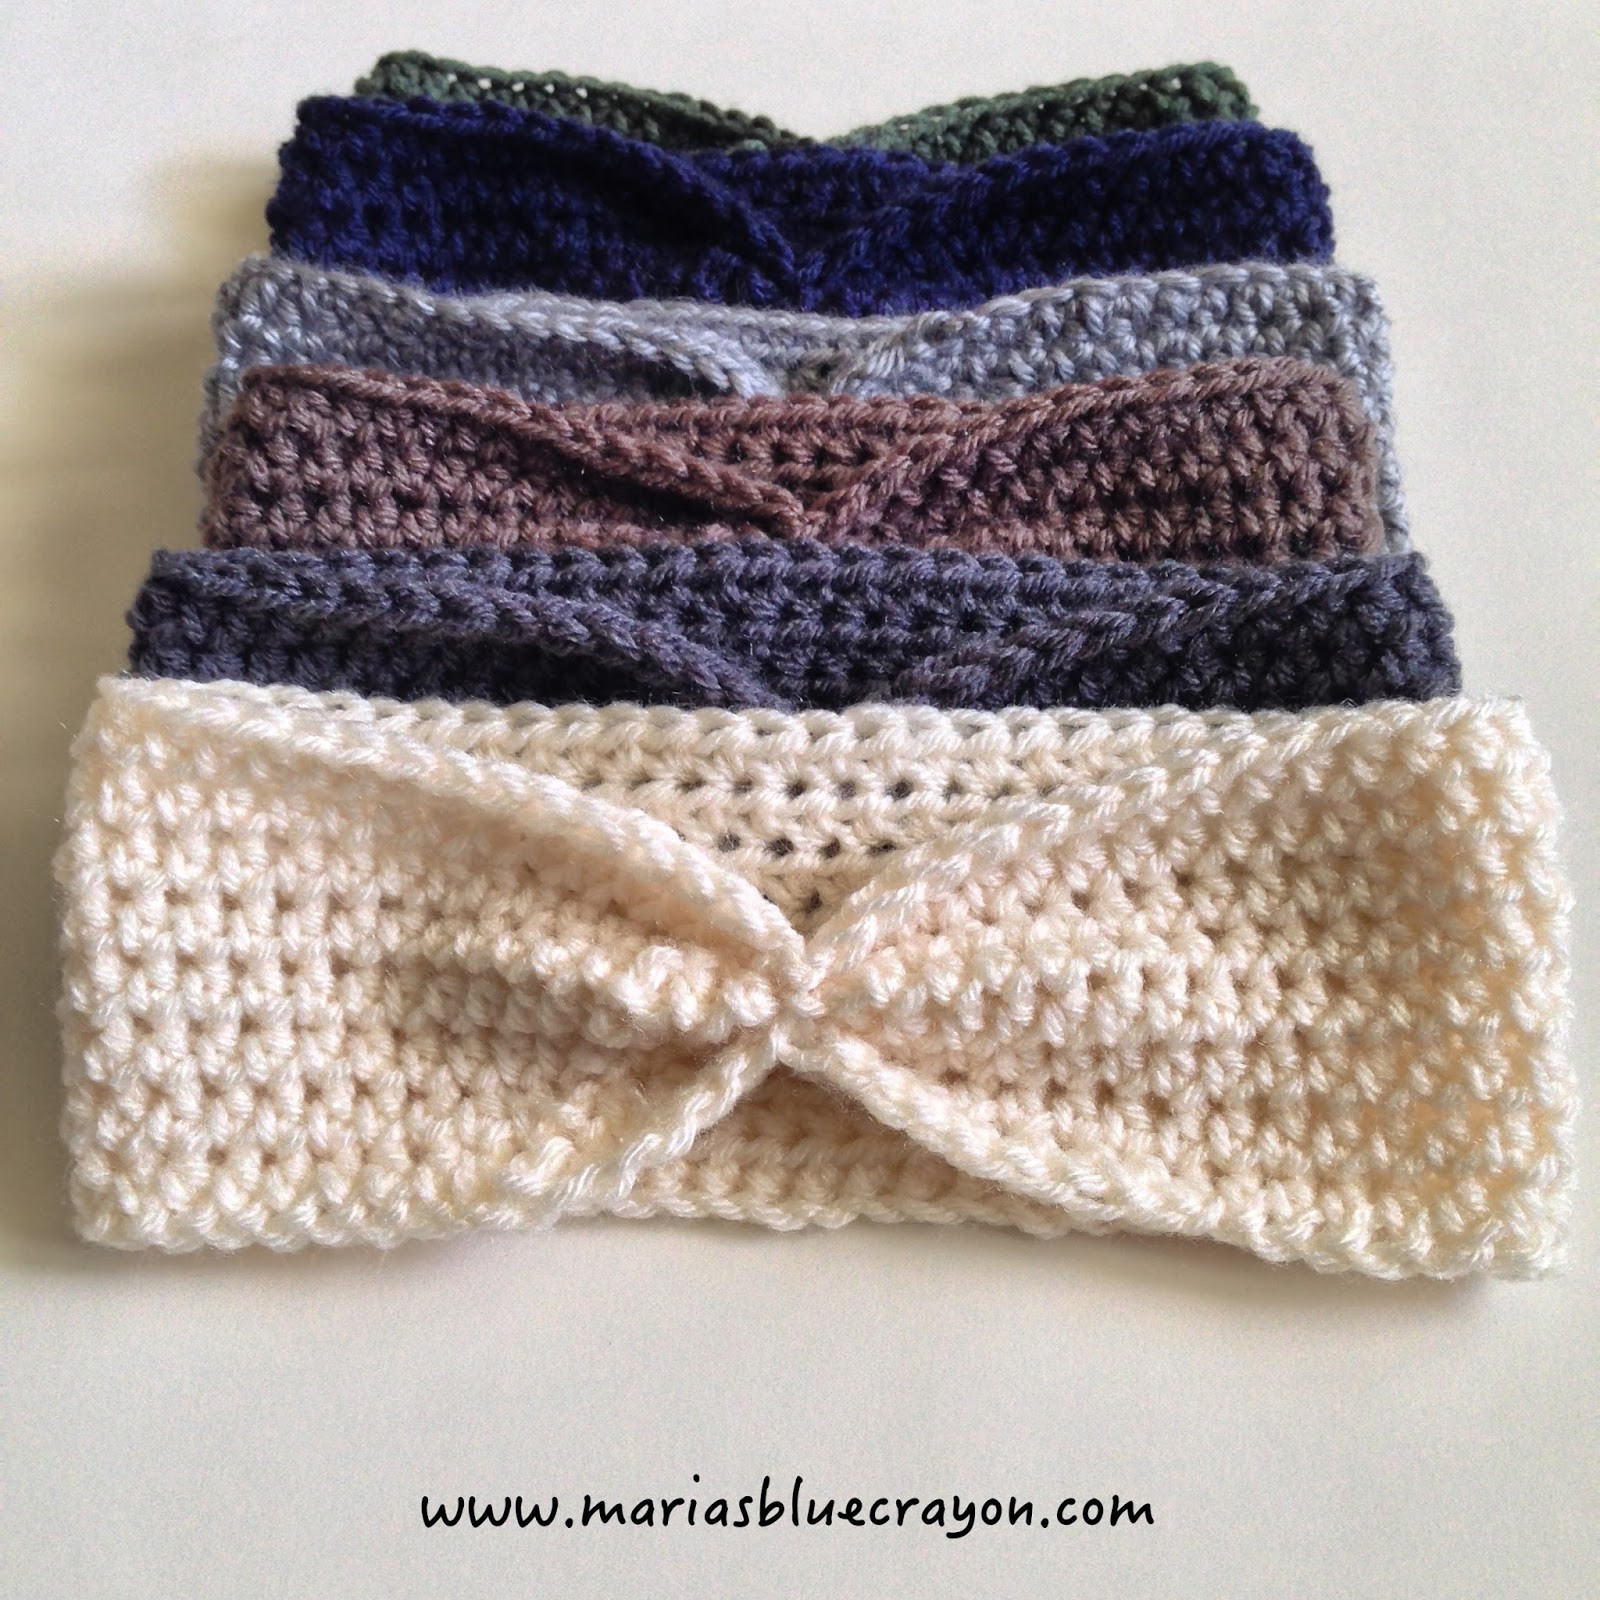 Free Crochet Patterns for Beginners Awesome Simple Crochet Ear Warmer Free Pattern for Beginners Of Luxury 40 Images Free Crochet Patterns for Beginners